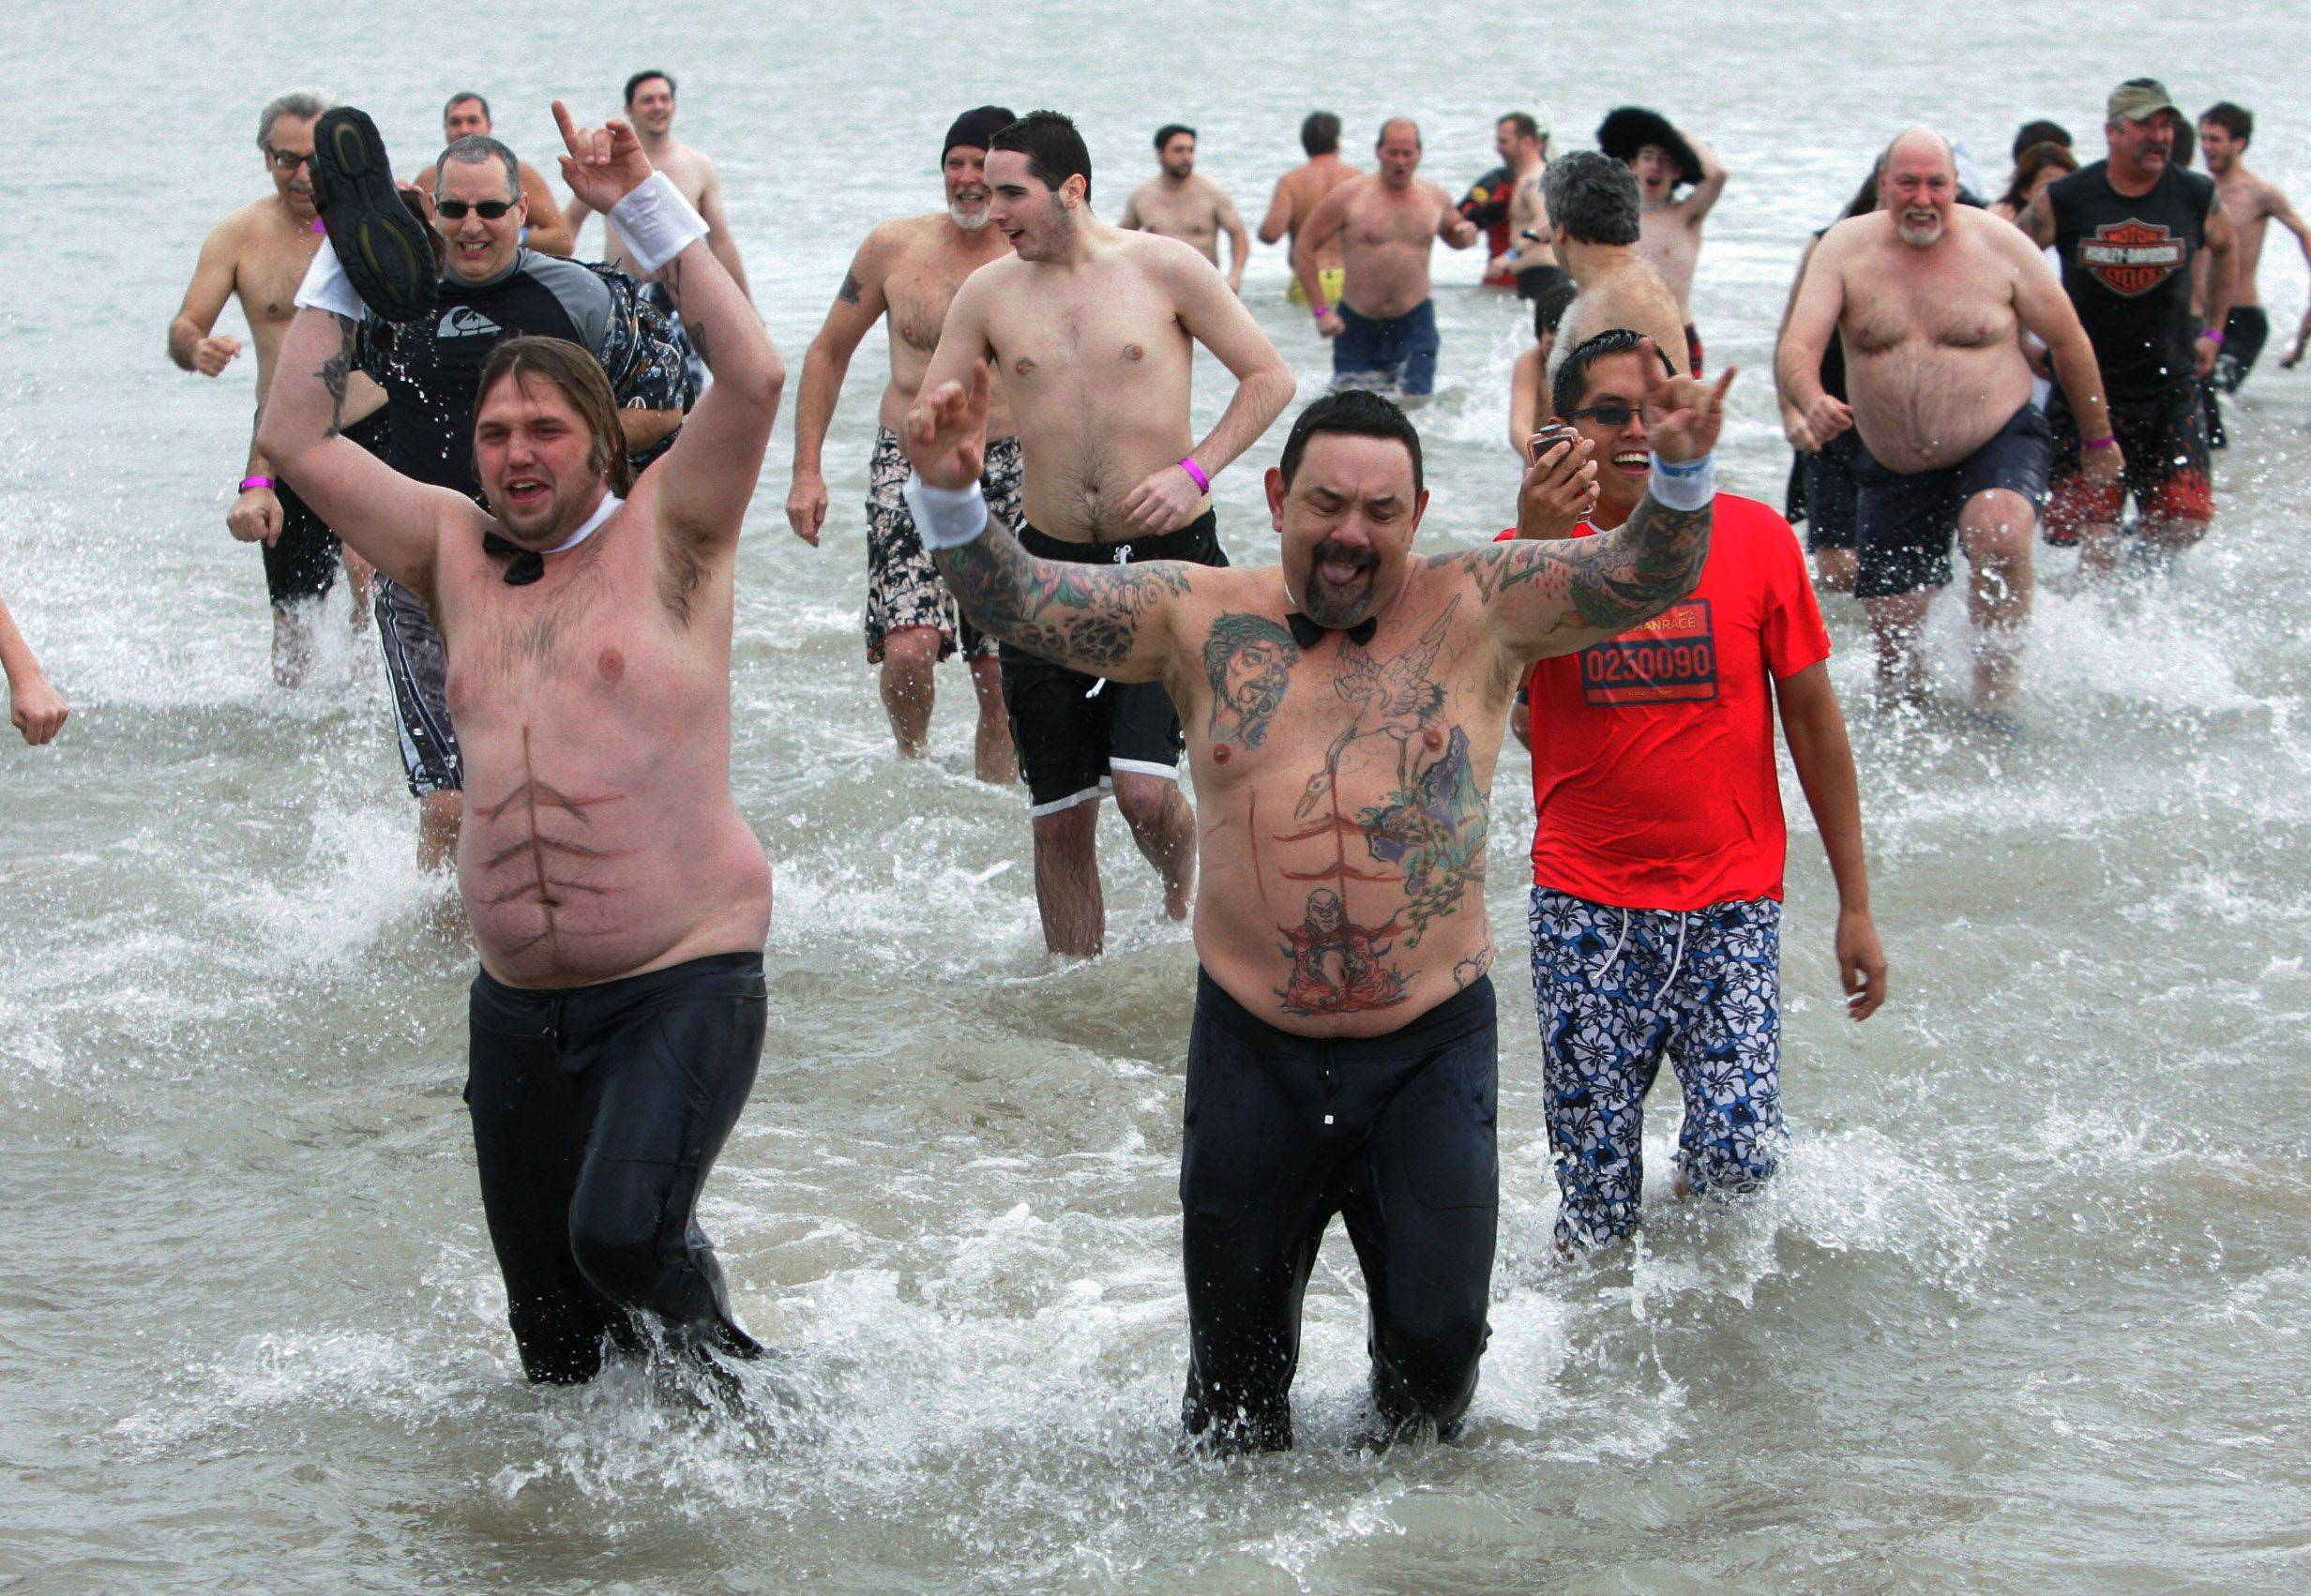 Costumed Daniel Reppert, left, of McHenry and John Sota of Zion lead a crowd out of the water during the 13th Annual Polar Bear Plunge Sunday in Waukegan.